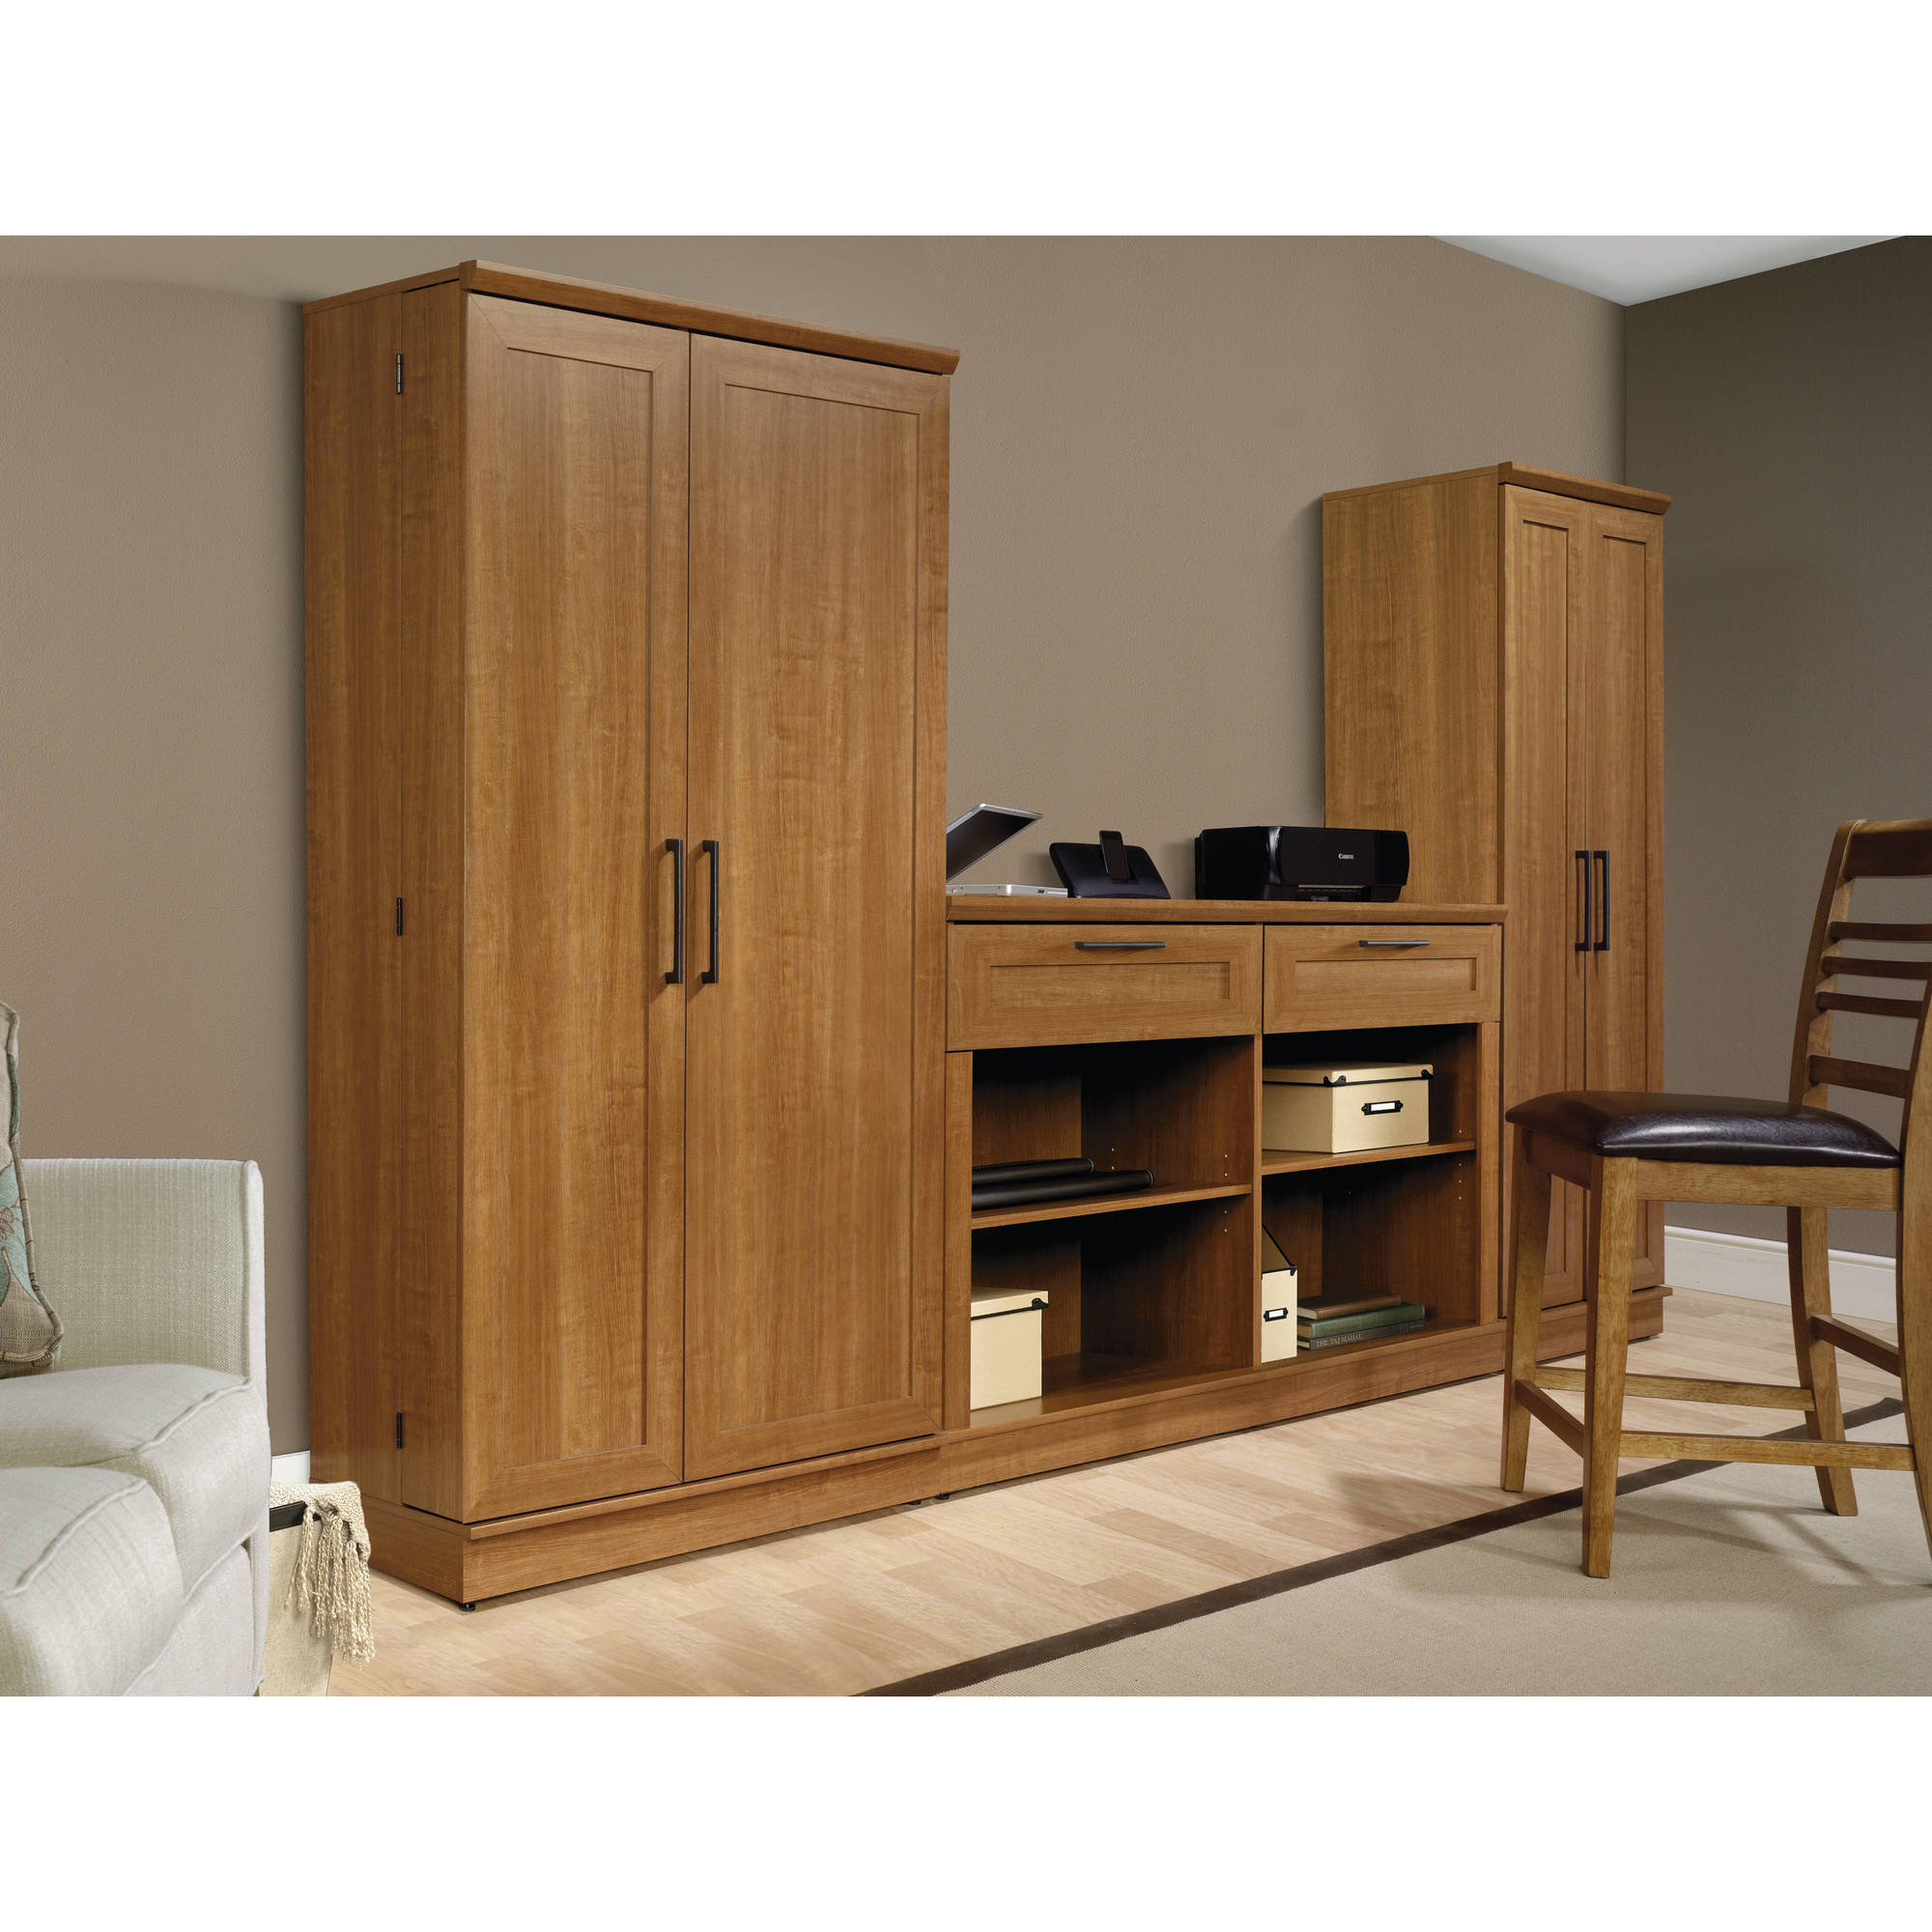 Sauder Home Plus Furniture Collection